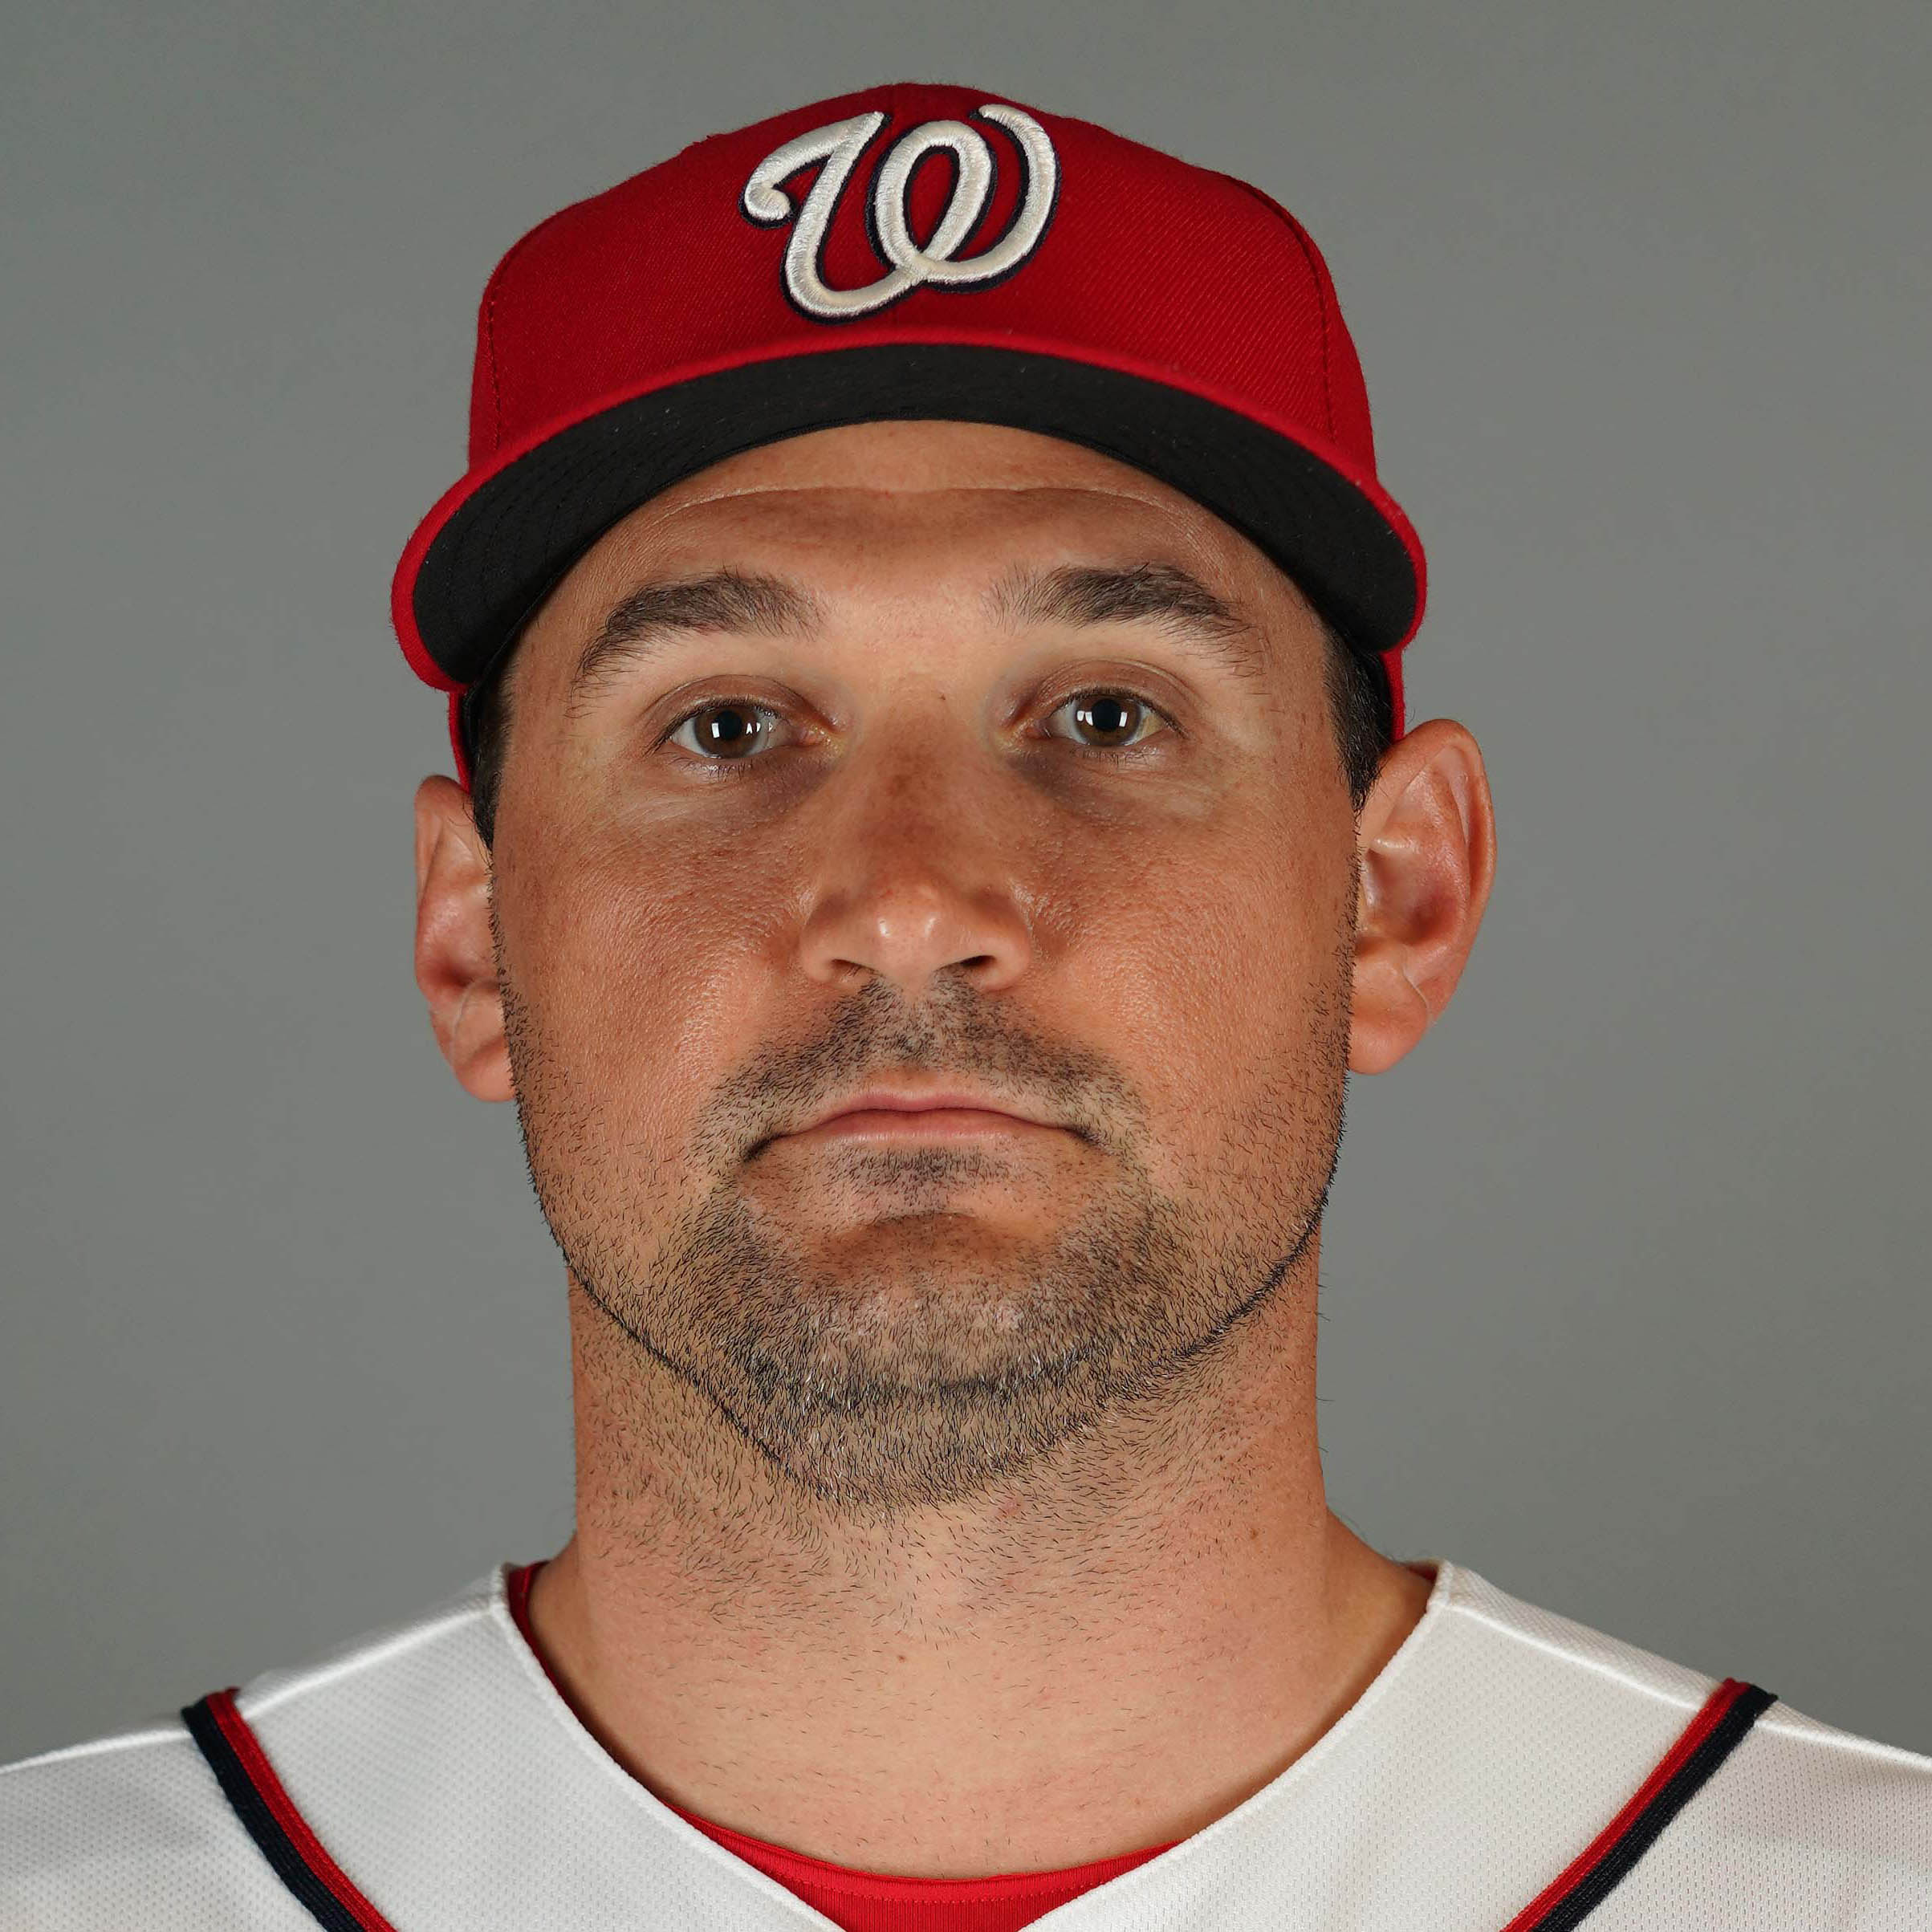 Ryan Zimmerman (R) Headshot